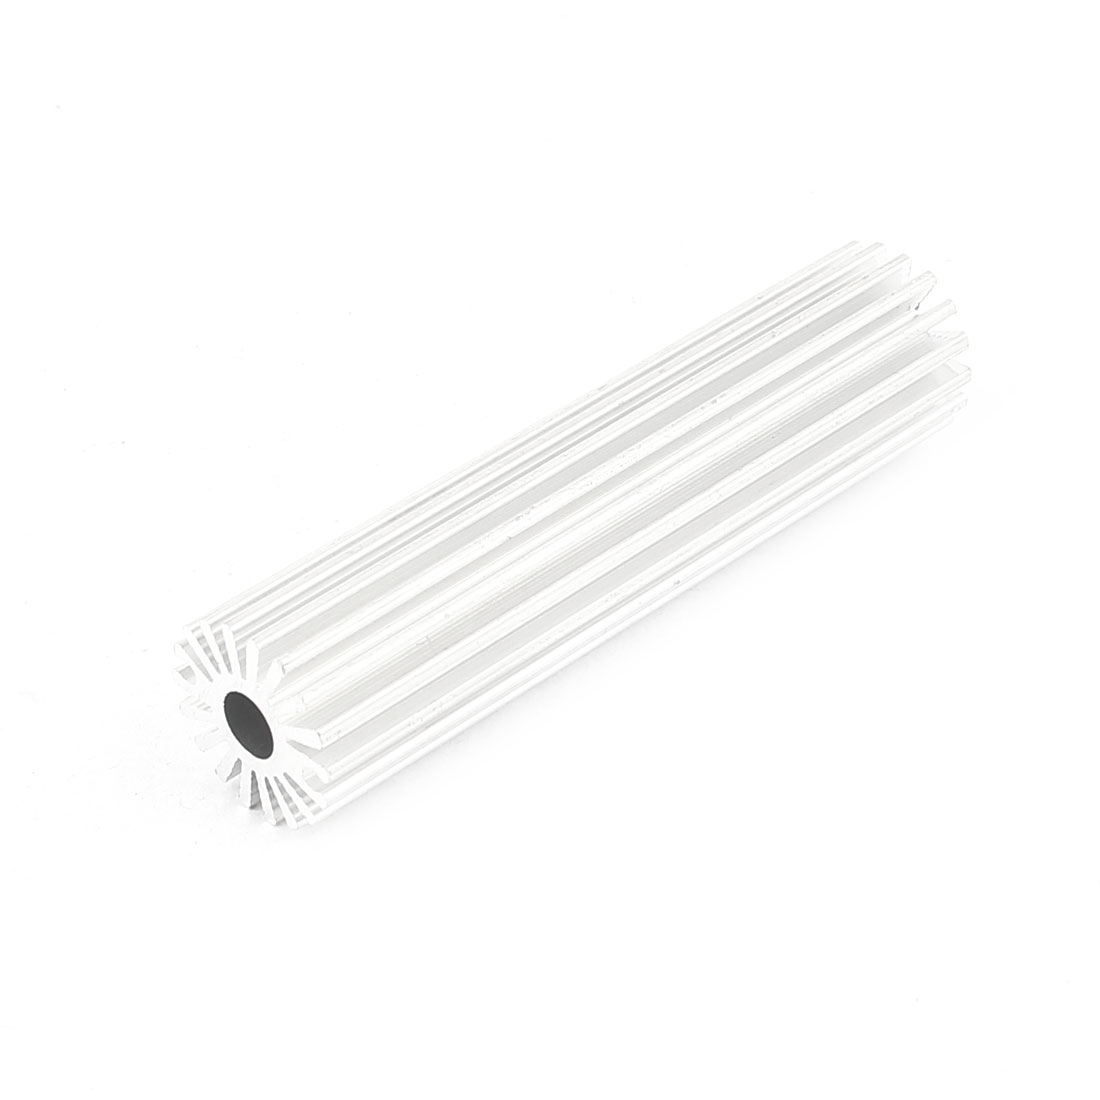 19.5mm x 80mm Cylinder 3W Power LED Heatsink Aluminium Cooling Fin